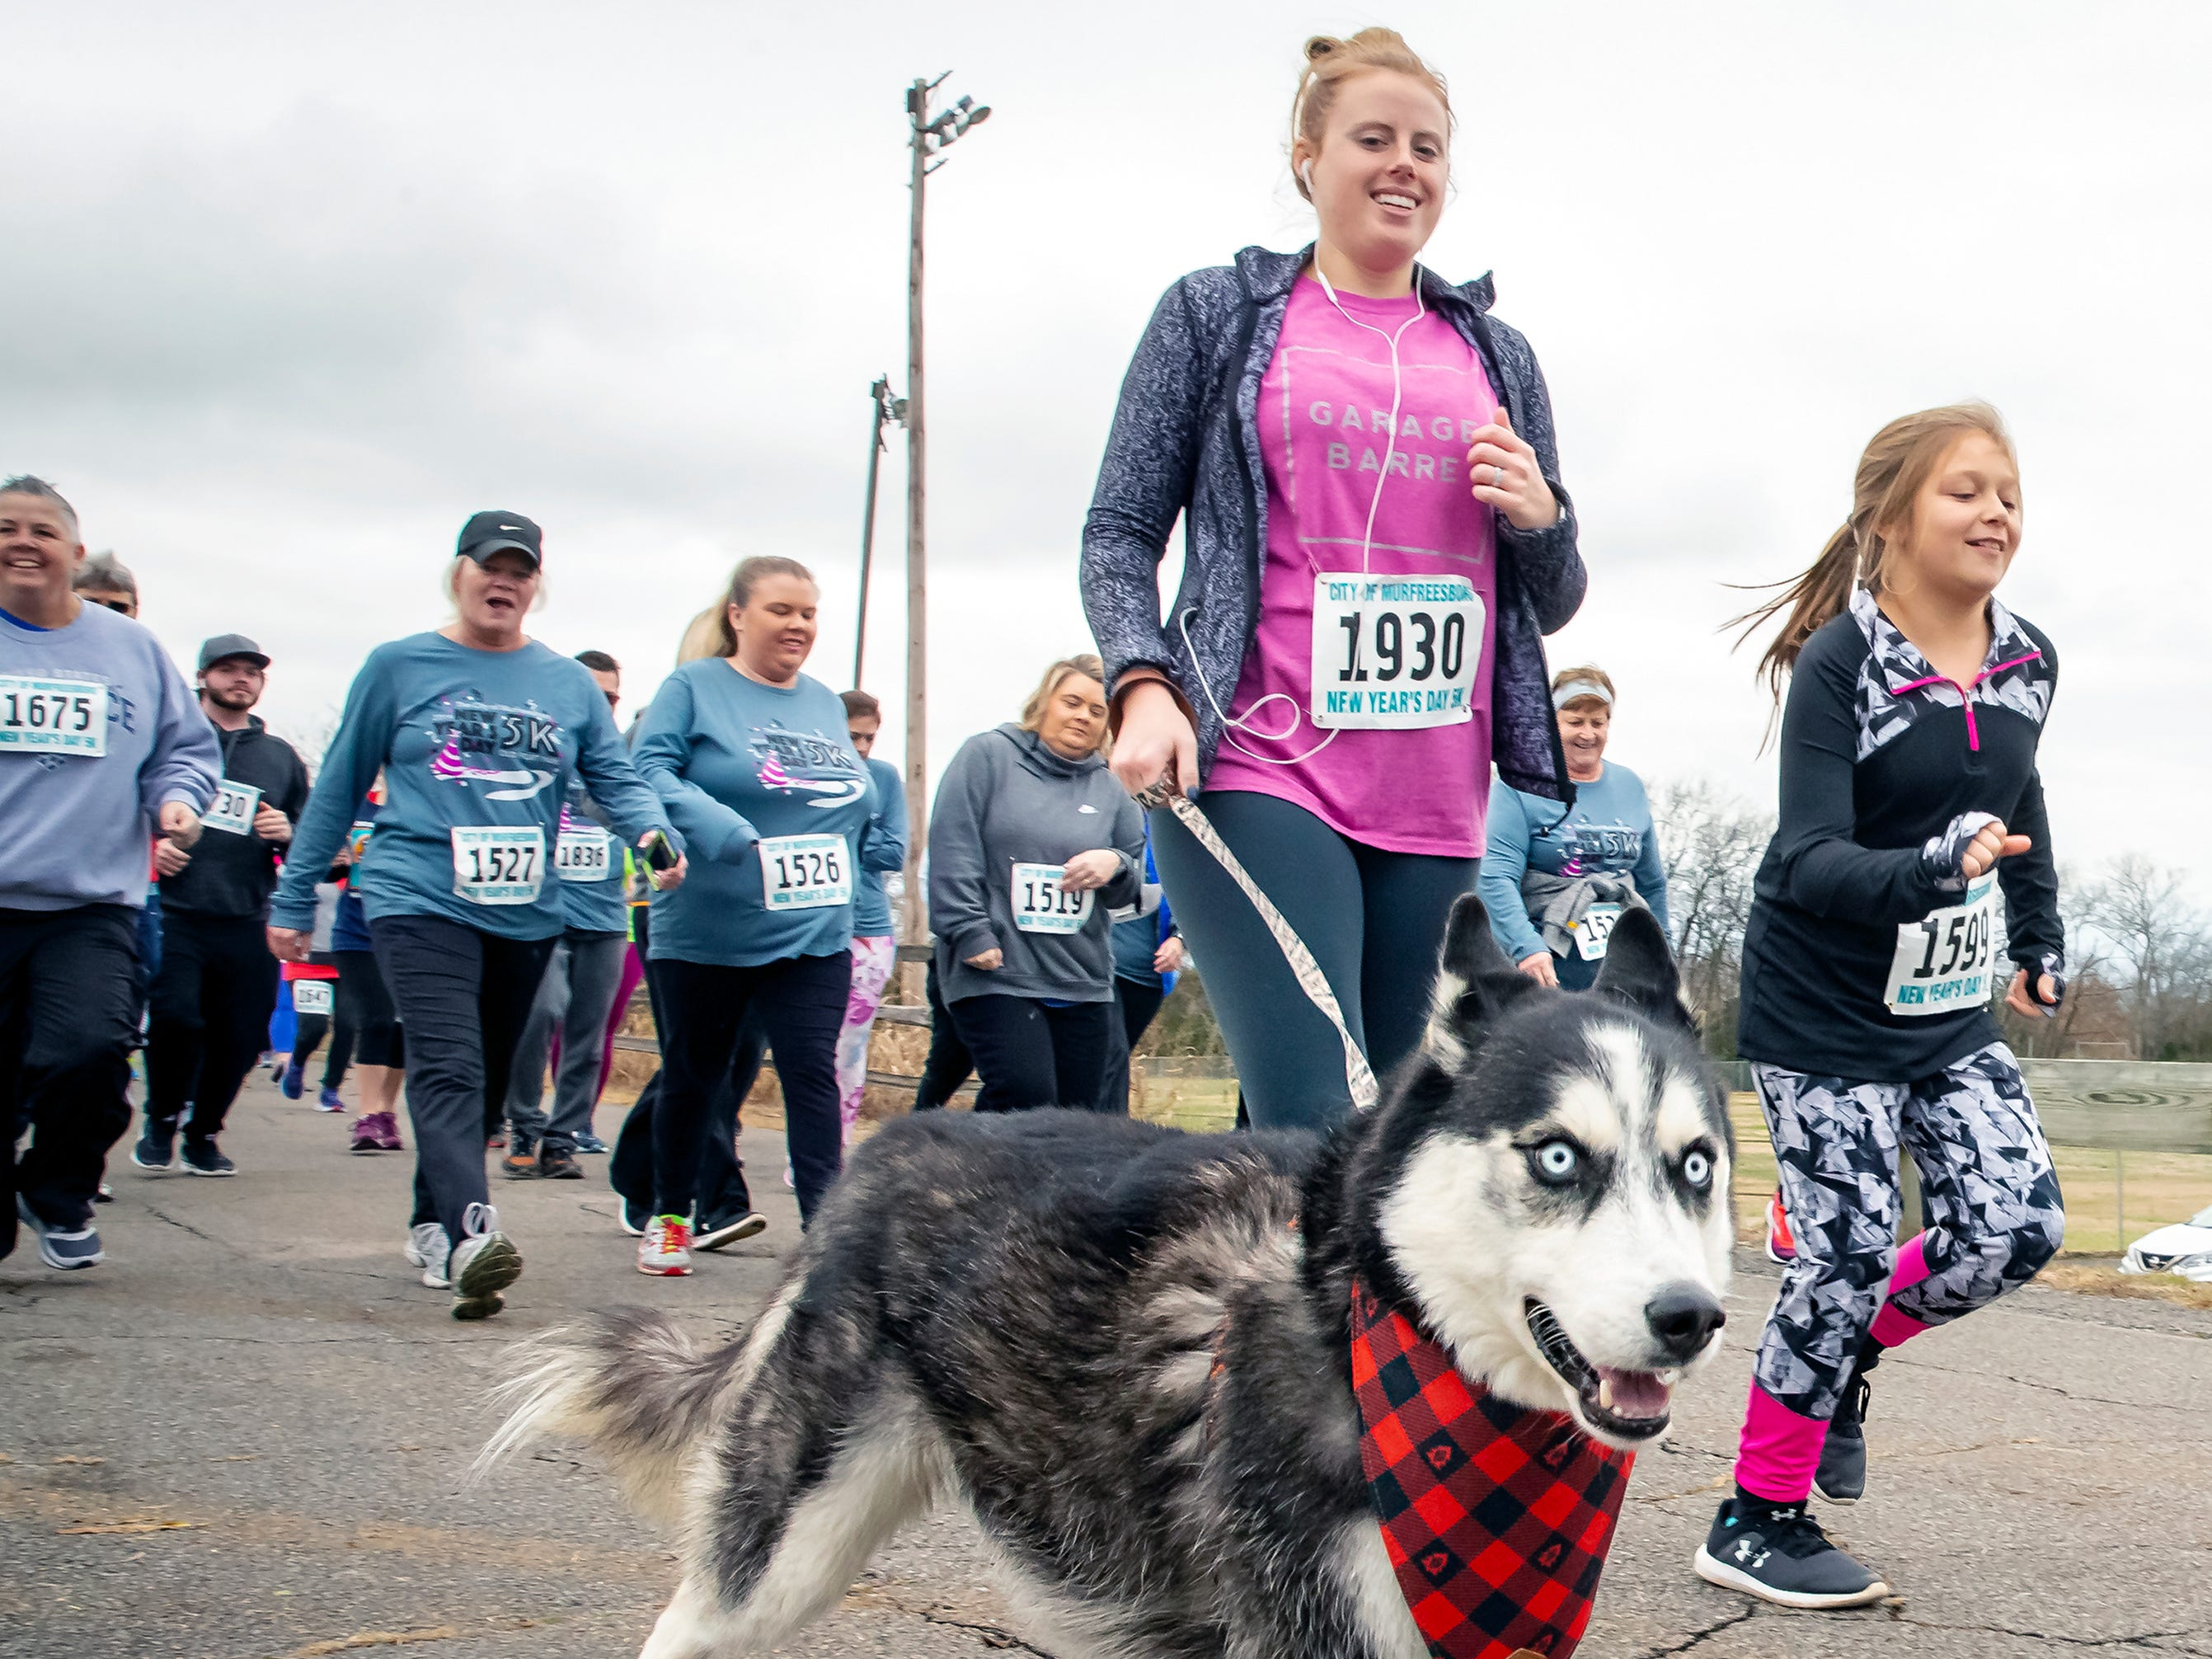 MacKenzie Faneli and her dog get started the New Year's Day 5K event held at Old Fort Park on Jan. 1, 2019.